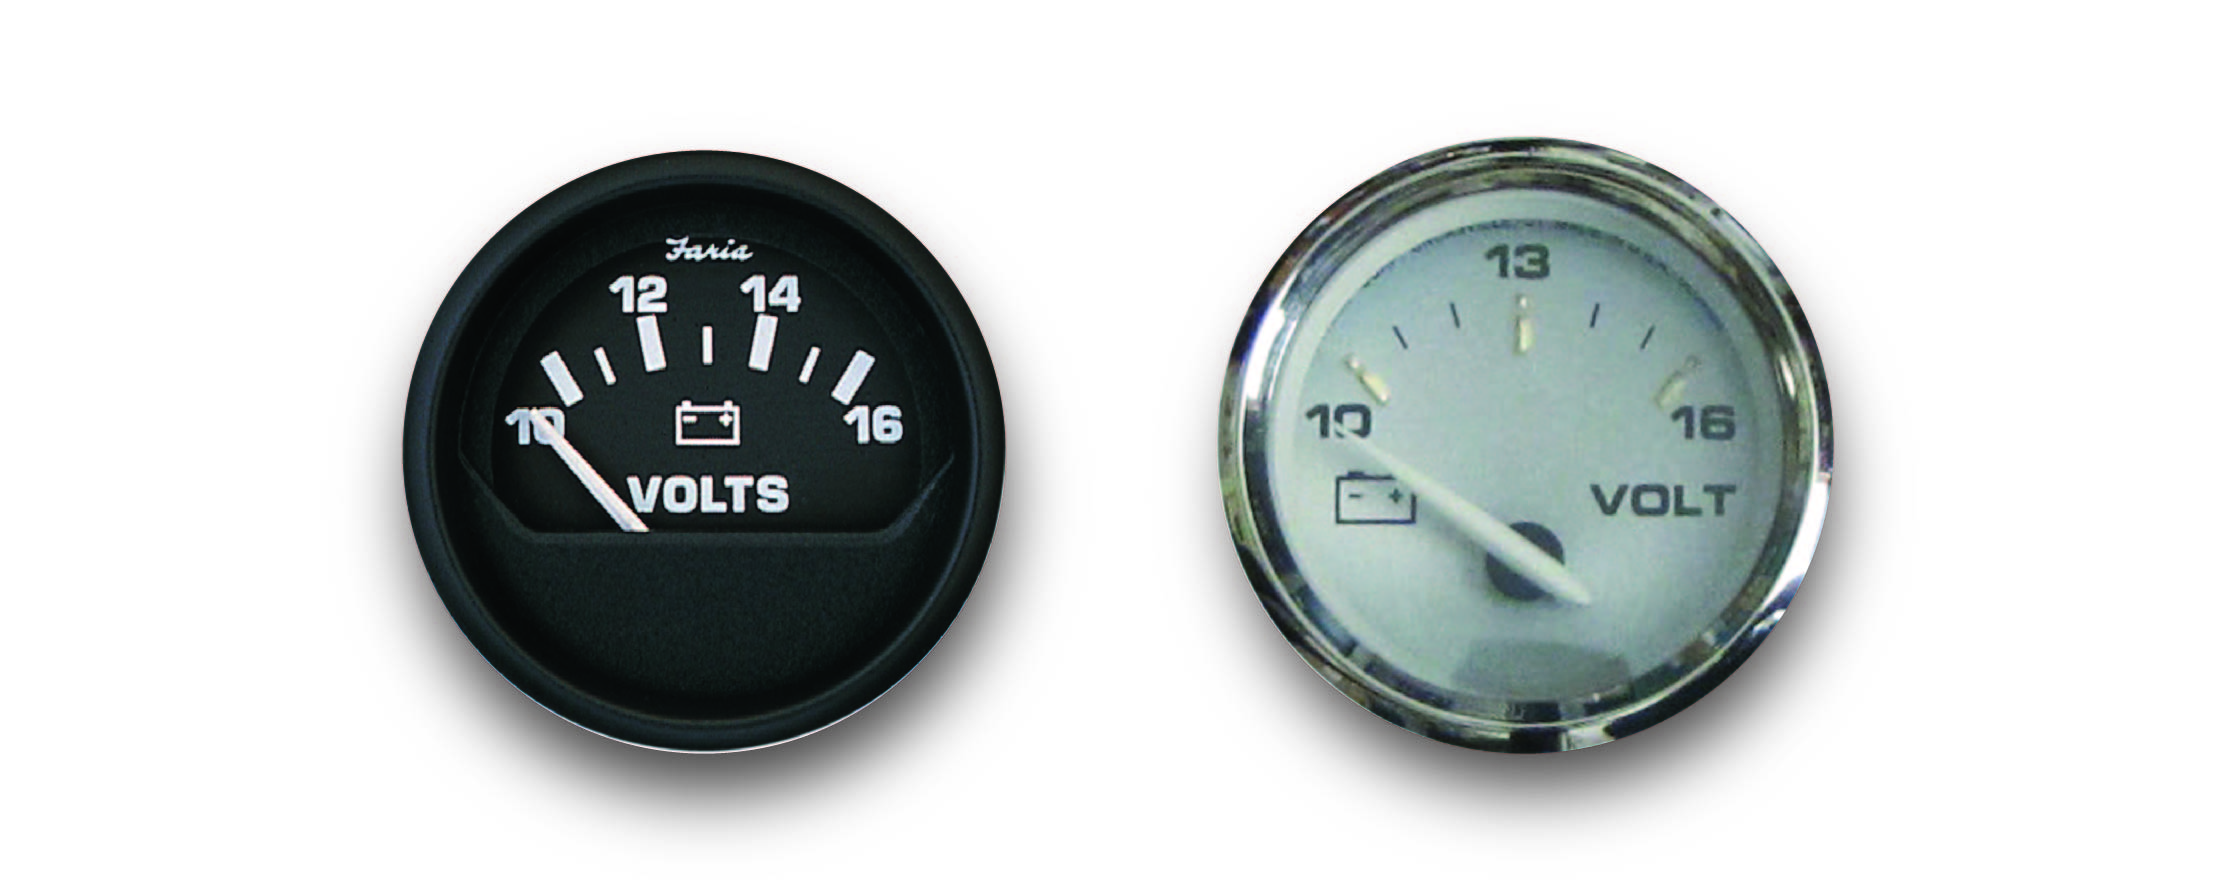 Faria Kronos 2 Voltmeter 10-16Vdc Vp7102 Product Category Boat Outfitting//Gauges Faria Beede Instruments